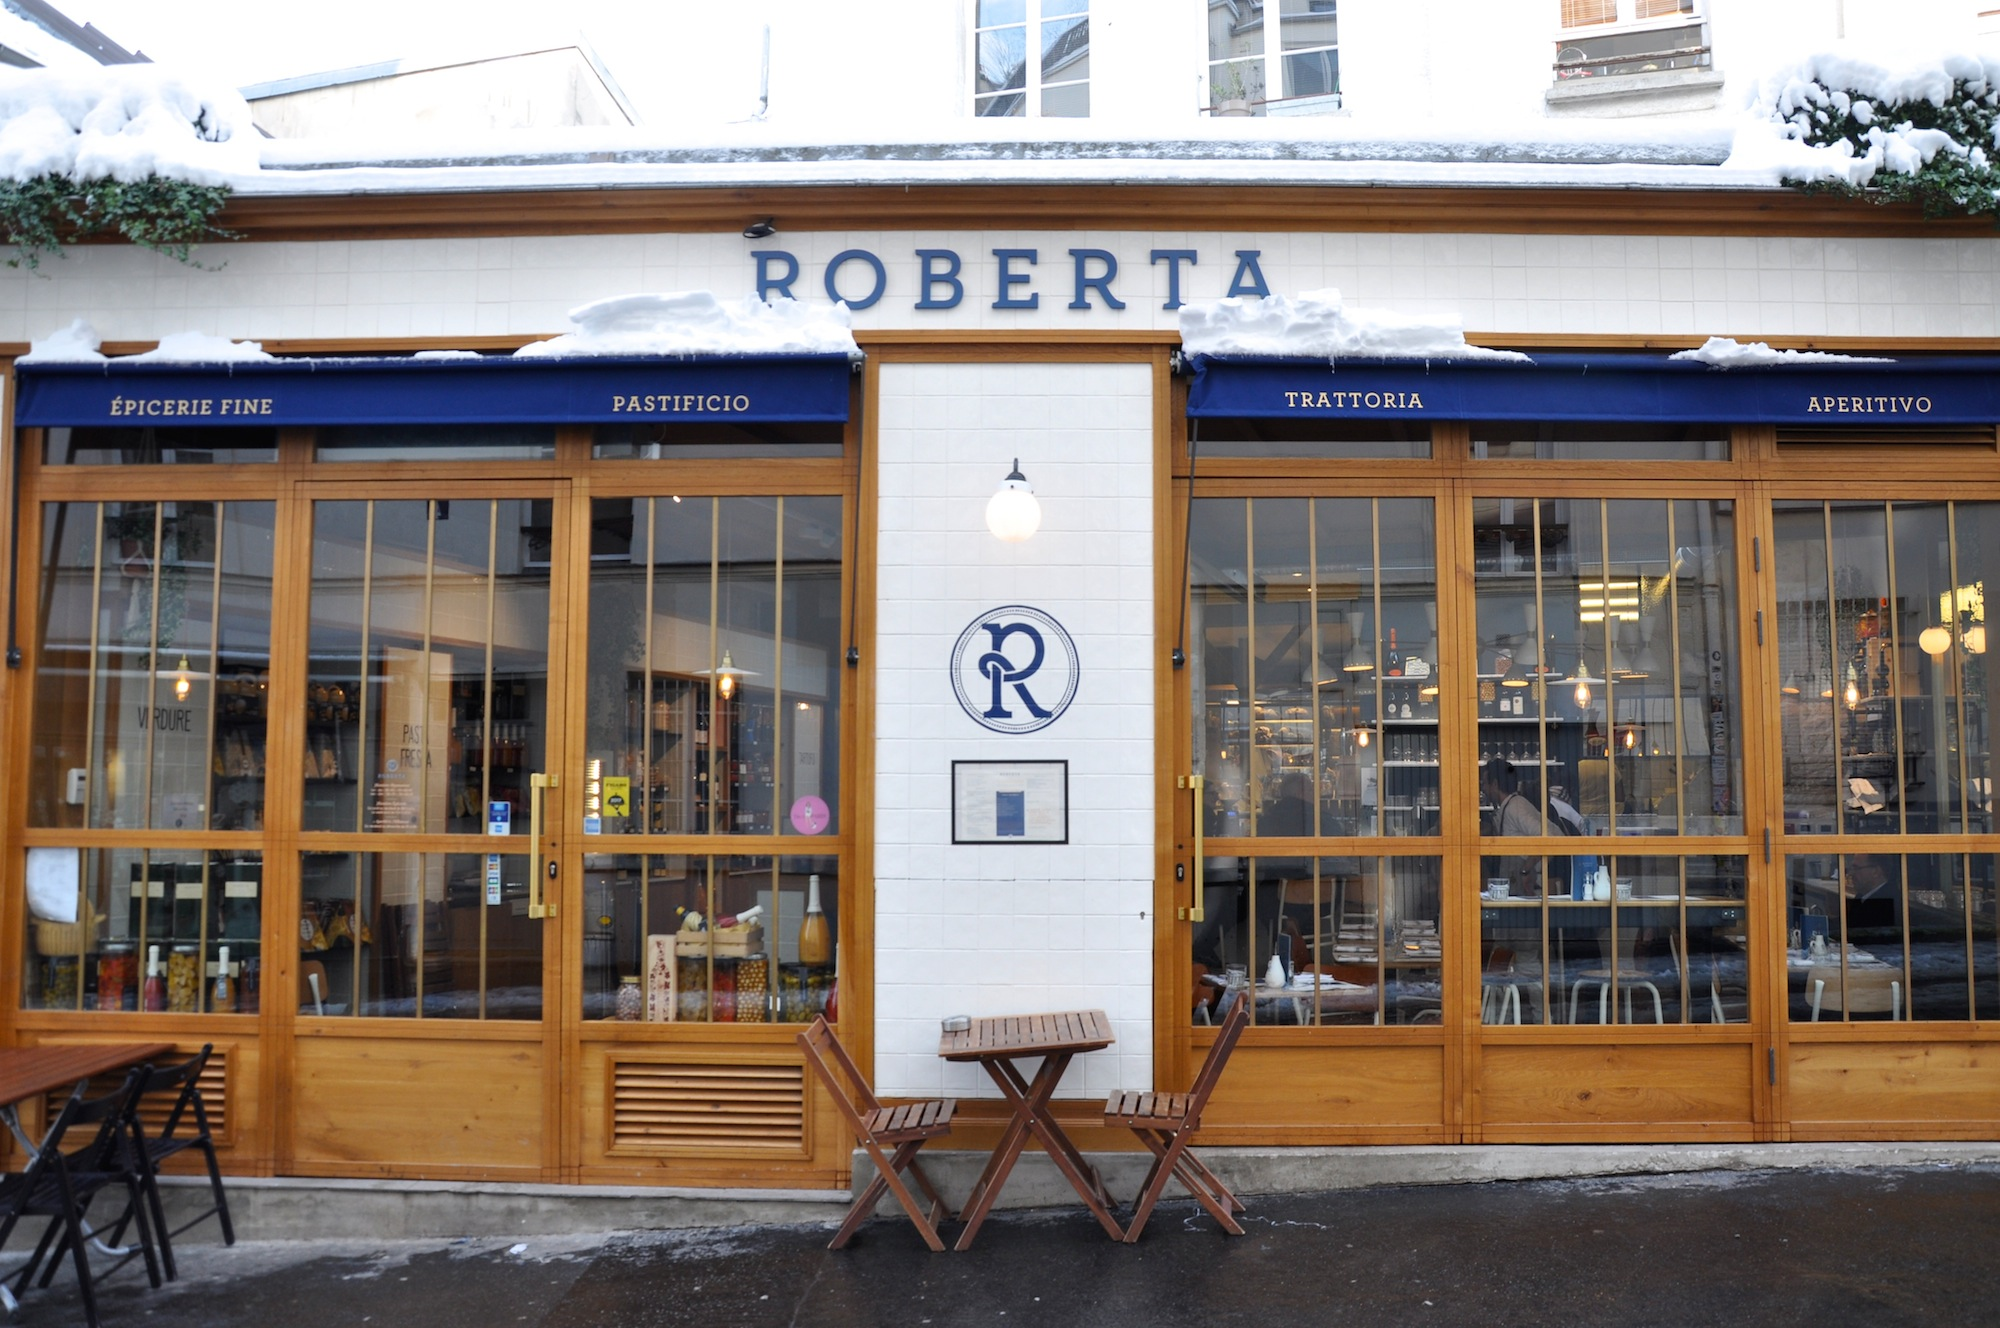 One of the best places to eat in Montmartre, is Roberta, an Italian restaurant with a wooden facade and a window looking out onto a cobblestone street.